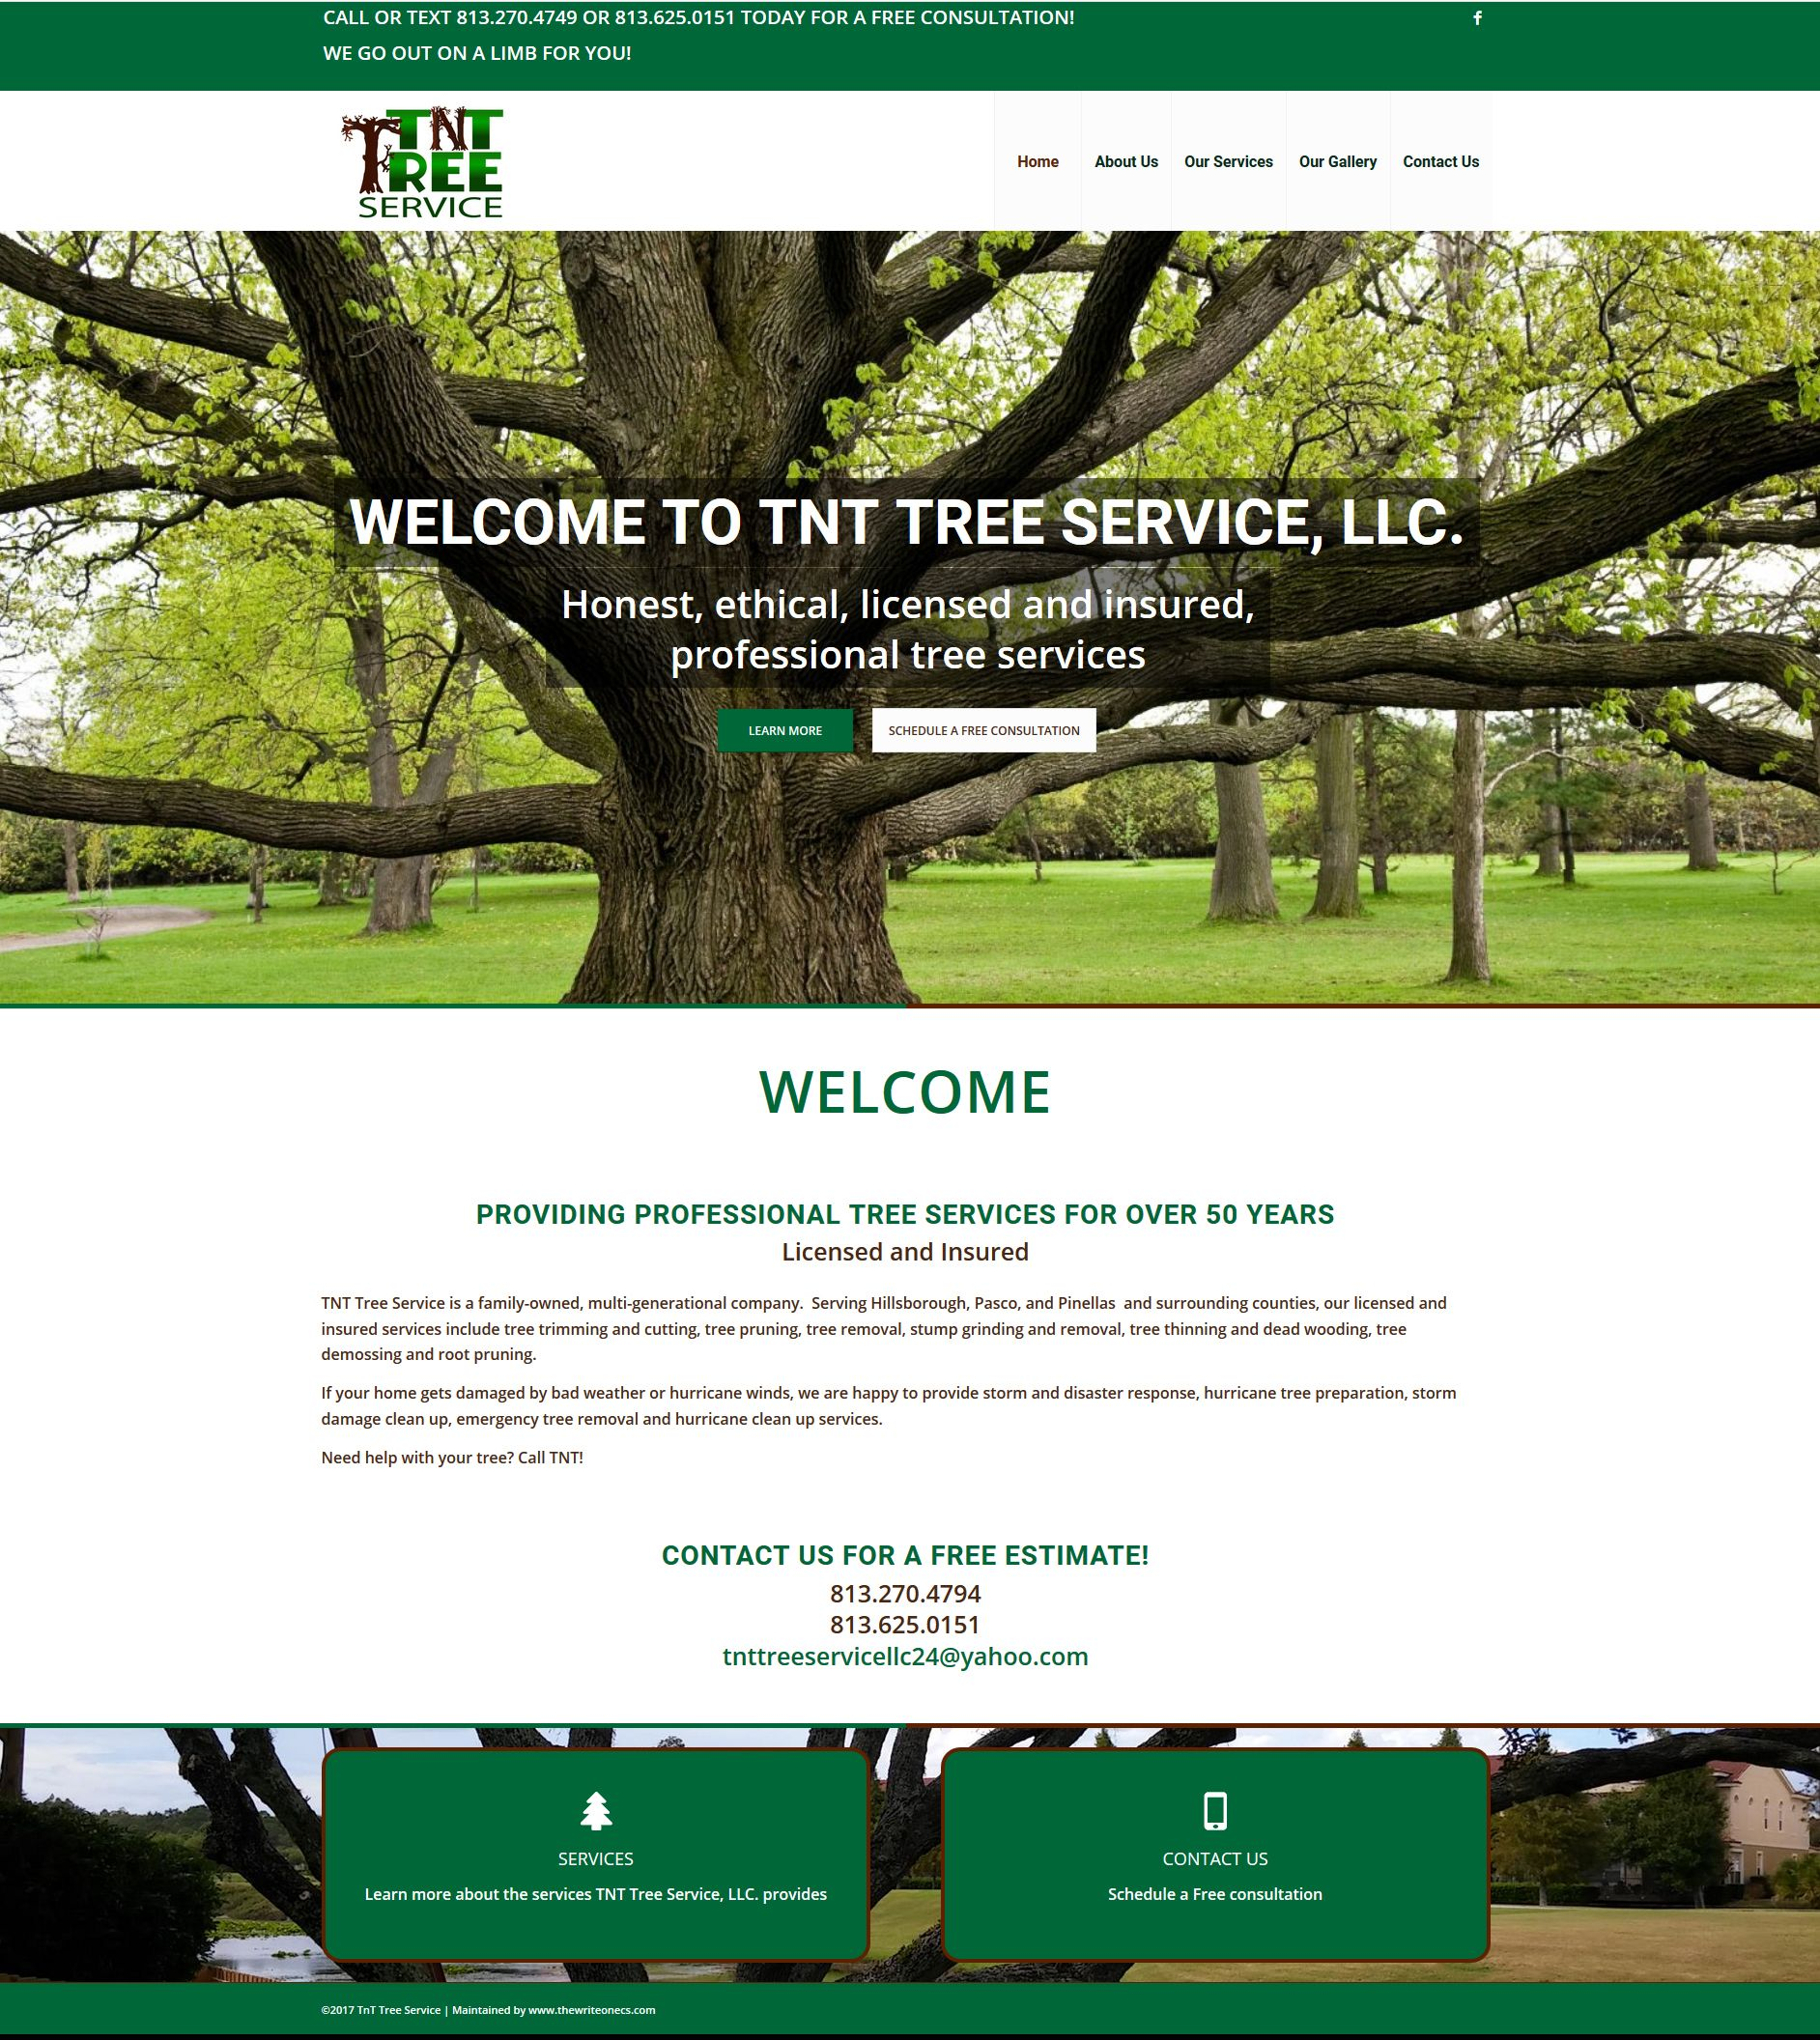 Website For Tree Service Company